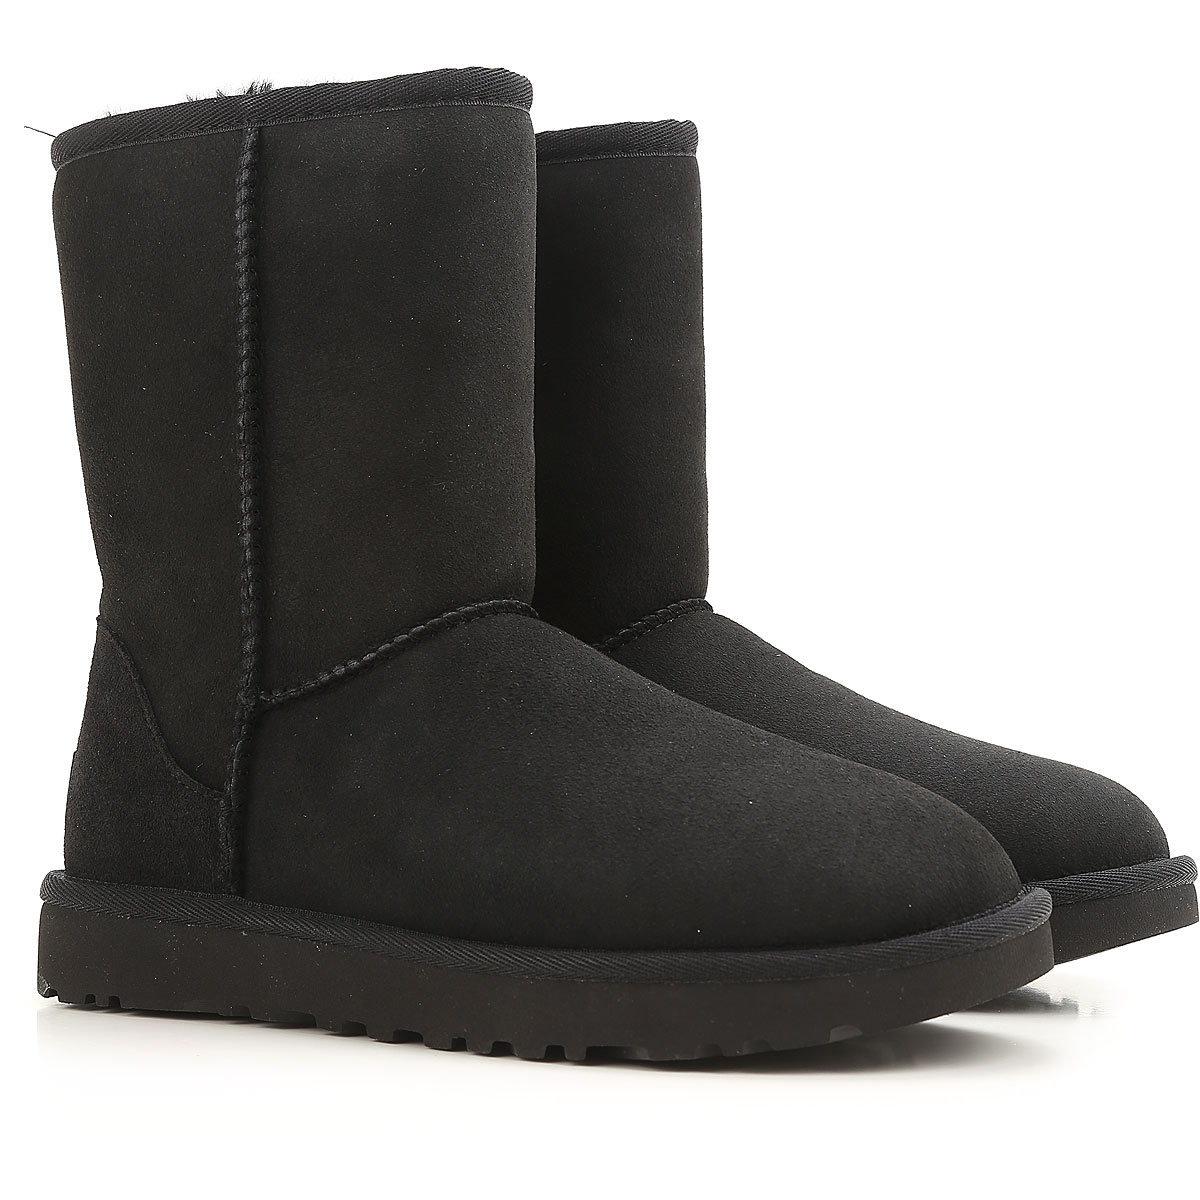 UGG Boots for Women, Booties On Sale, Black, suede, 2019, USA 6 UK 4 5 EU 37 JAPAN 230 USA 8 UK 6 5 EU 39 JAPAN 250 USA 9 UK 7 5 EU 40 JAPAN